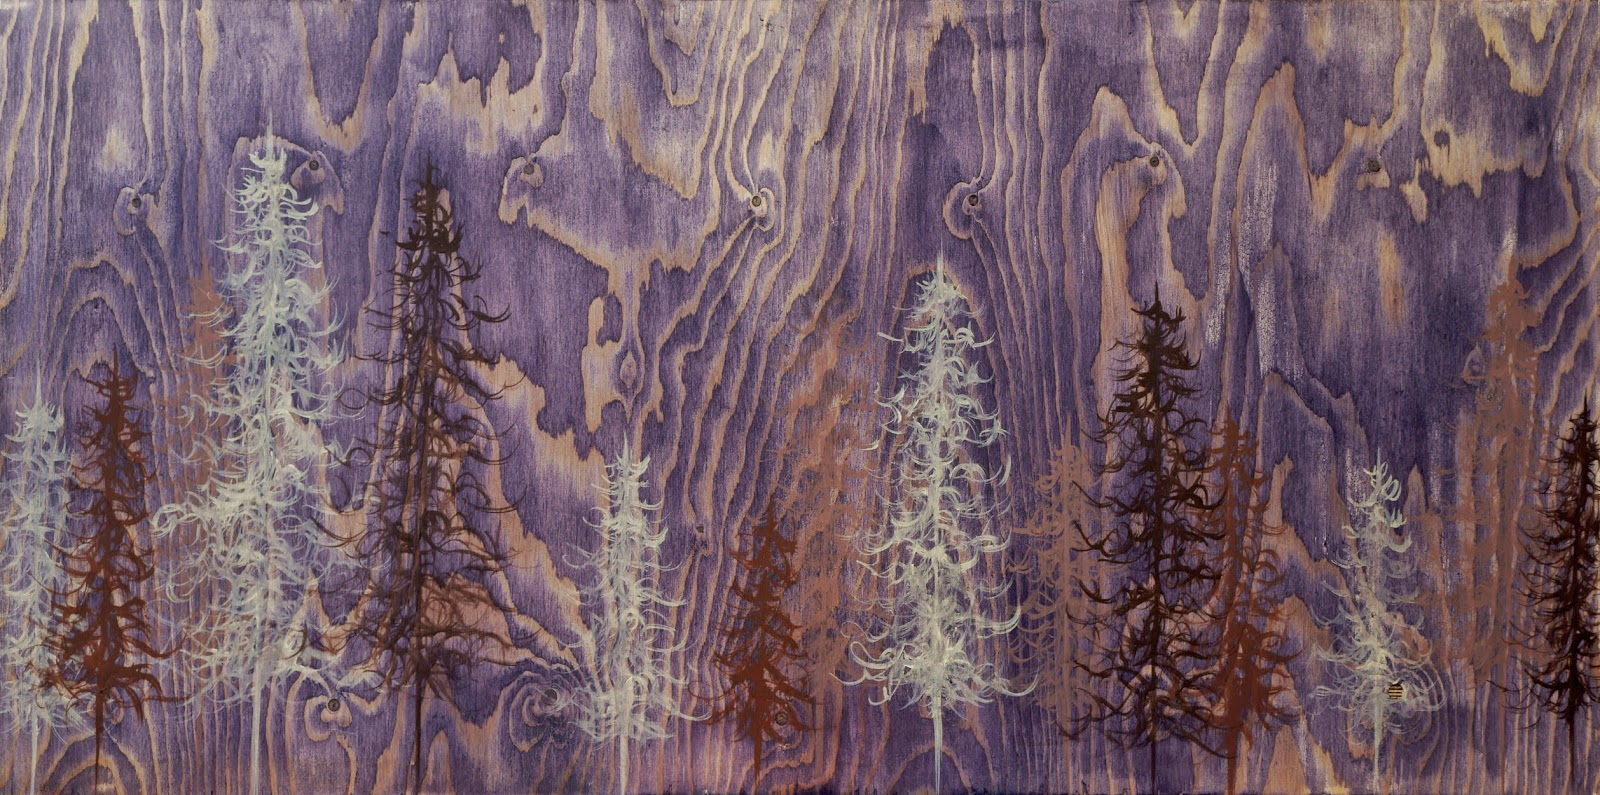 http://society6.com/emilymagone/purple-trees-on-woodpanel#1=45